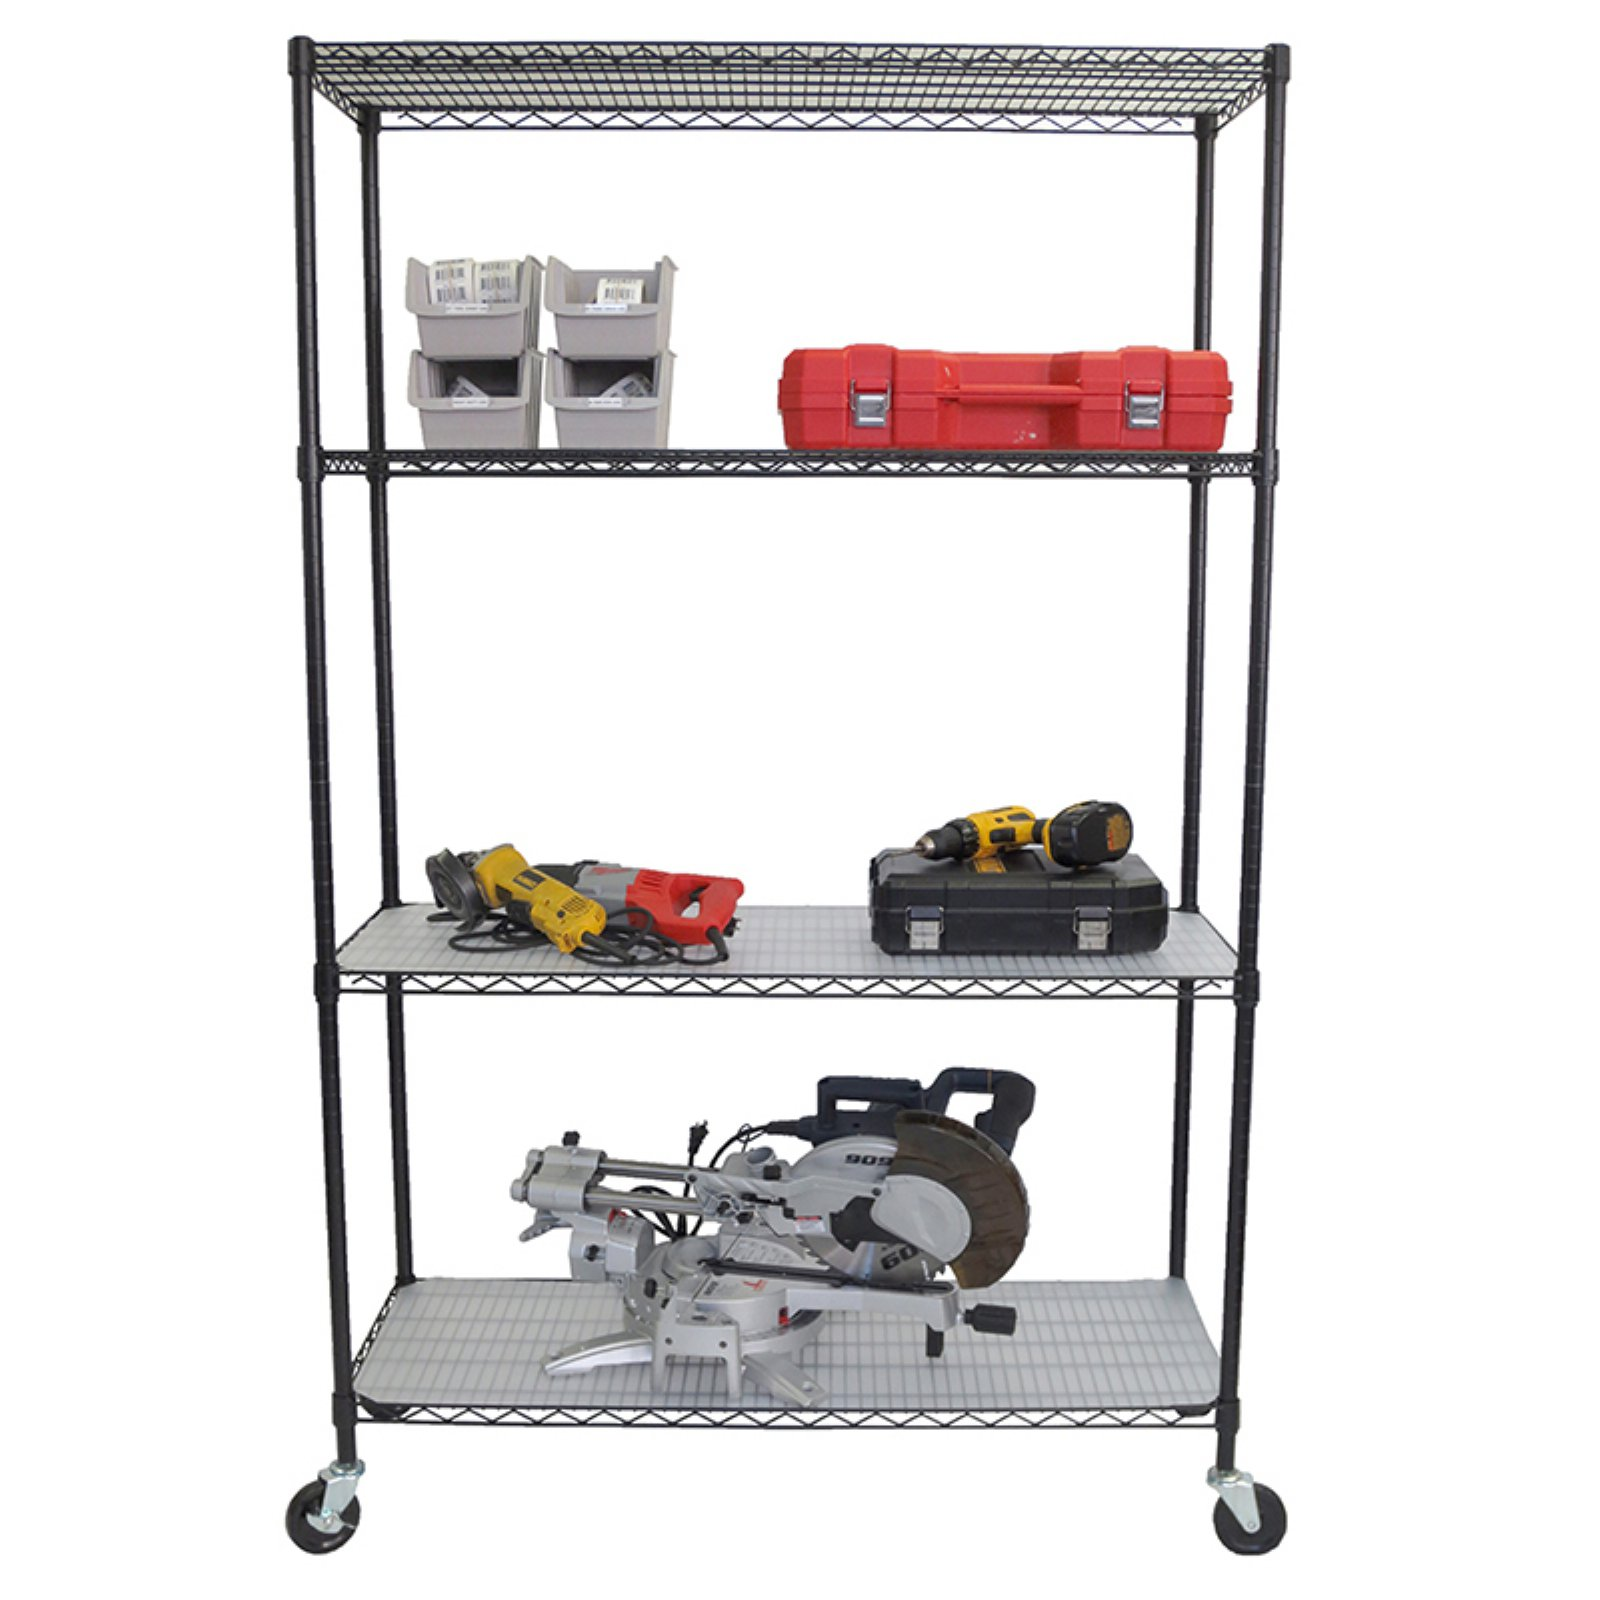 Trinity 4-Tier Wire Shelving Rack with Wheels and Liners, Black